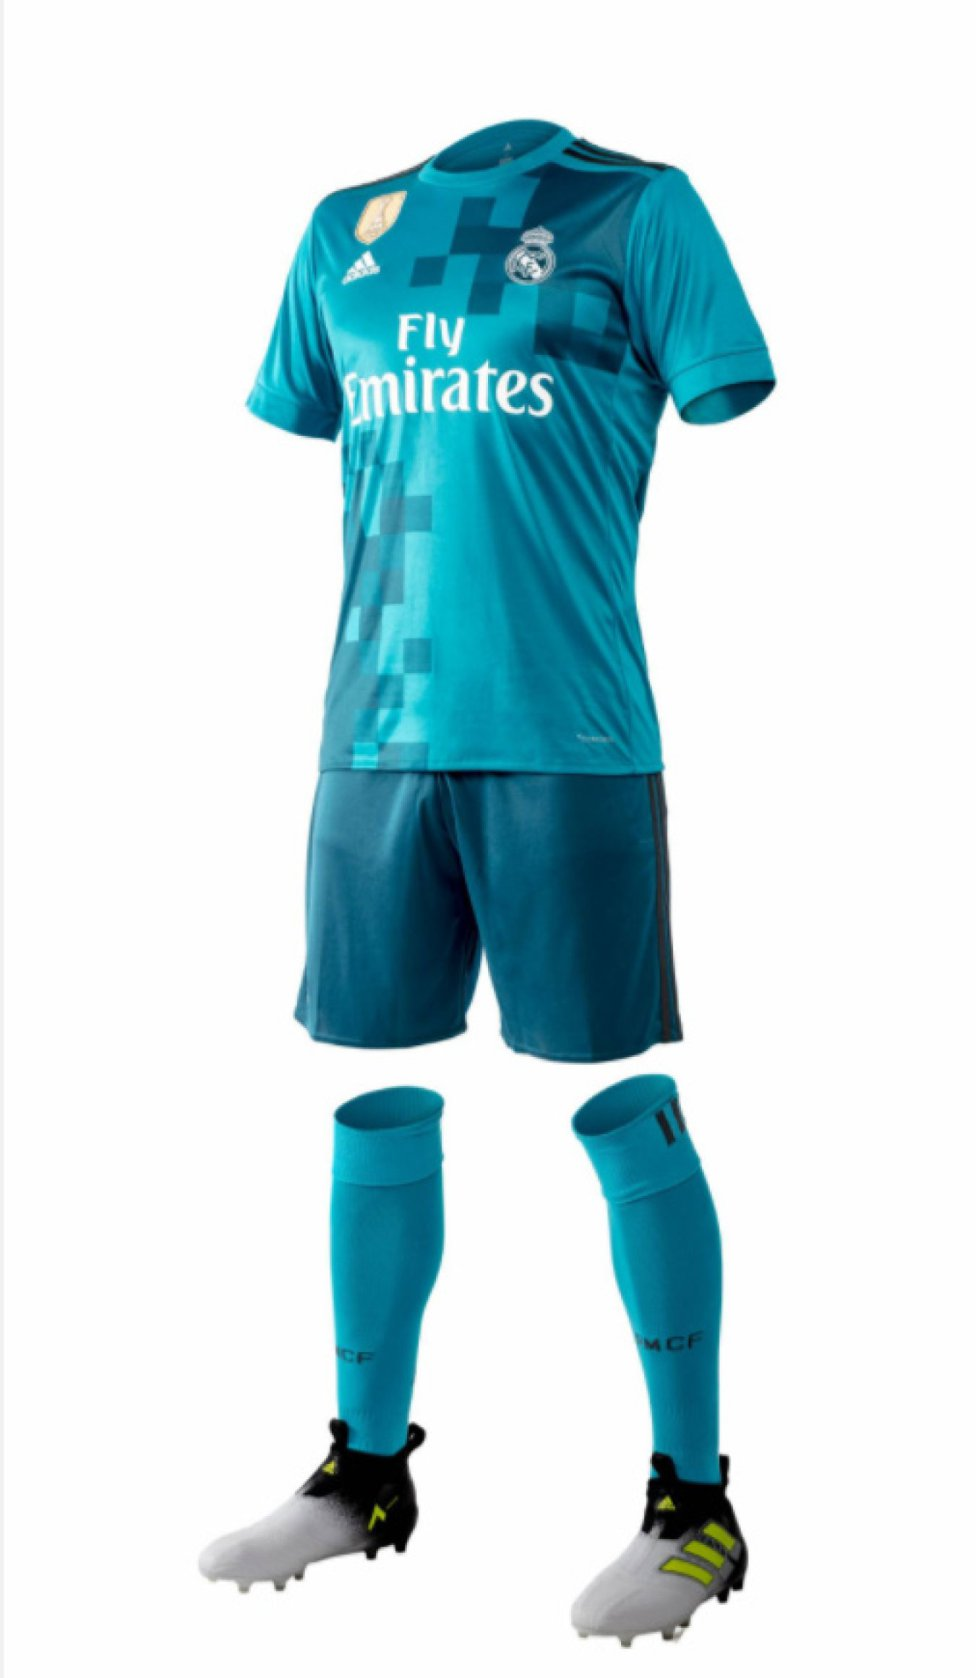 wholesale dealer 05b85 5d1fd Real Madrid's 2017/18 third kit in pictures - AS.com